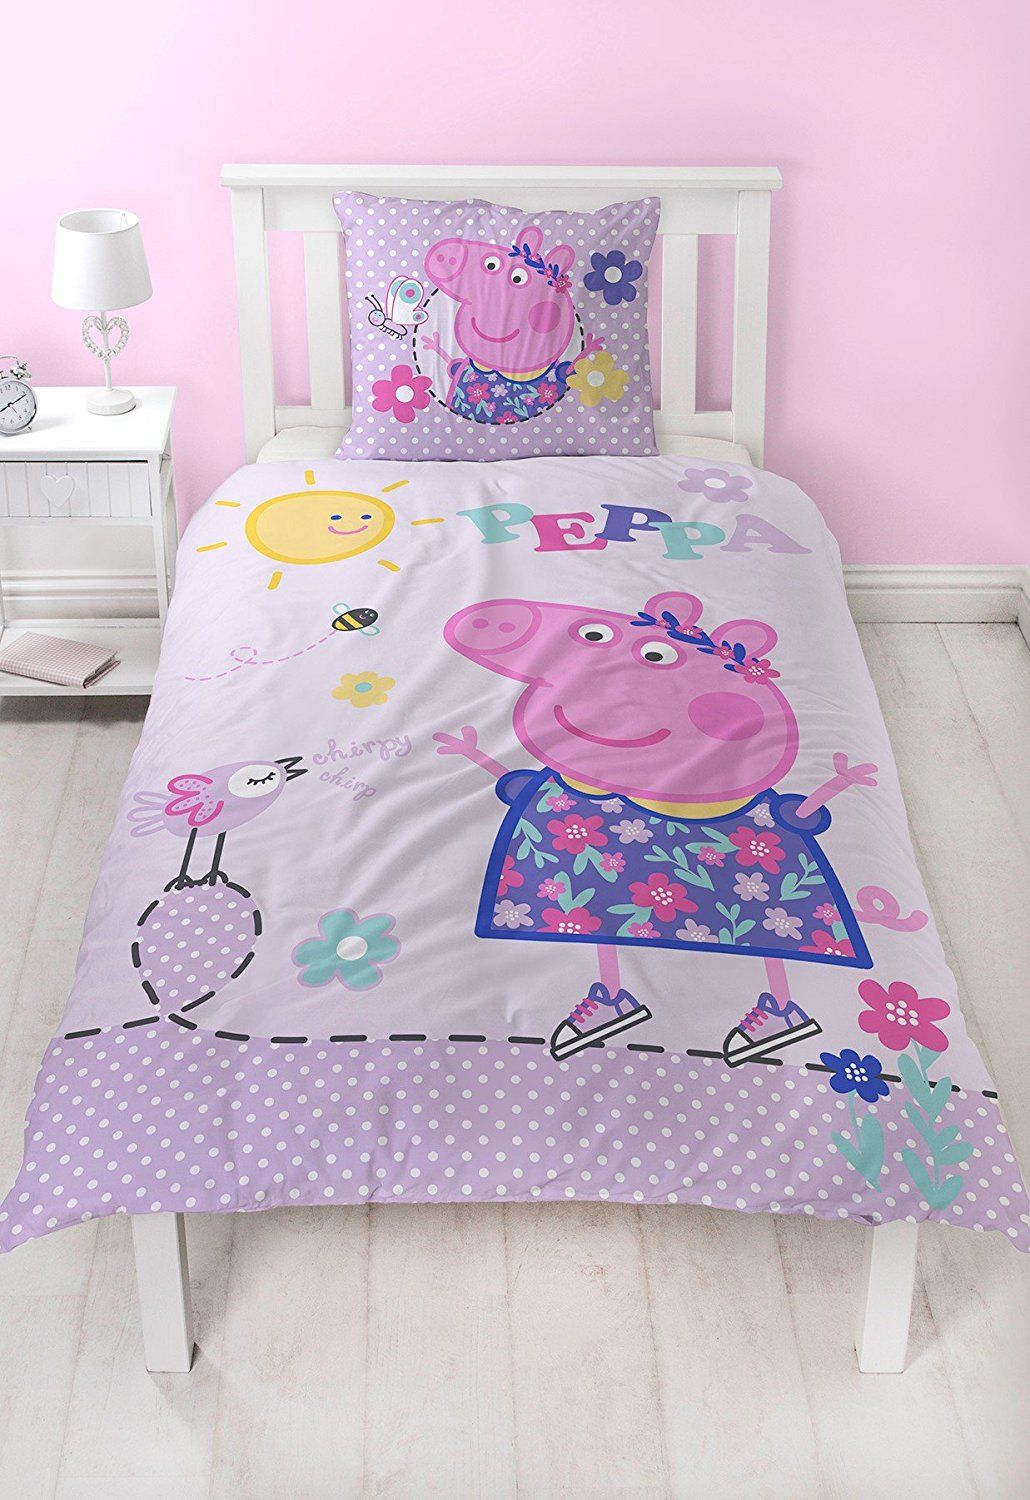 peppa pig flanell m dchen bettw sche wende motiv warm kuschelig 2 tlg kissenbezug 80x80. Black Bedroom Furniture Sets. Home Design Ideas